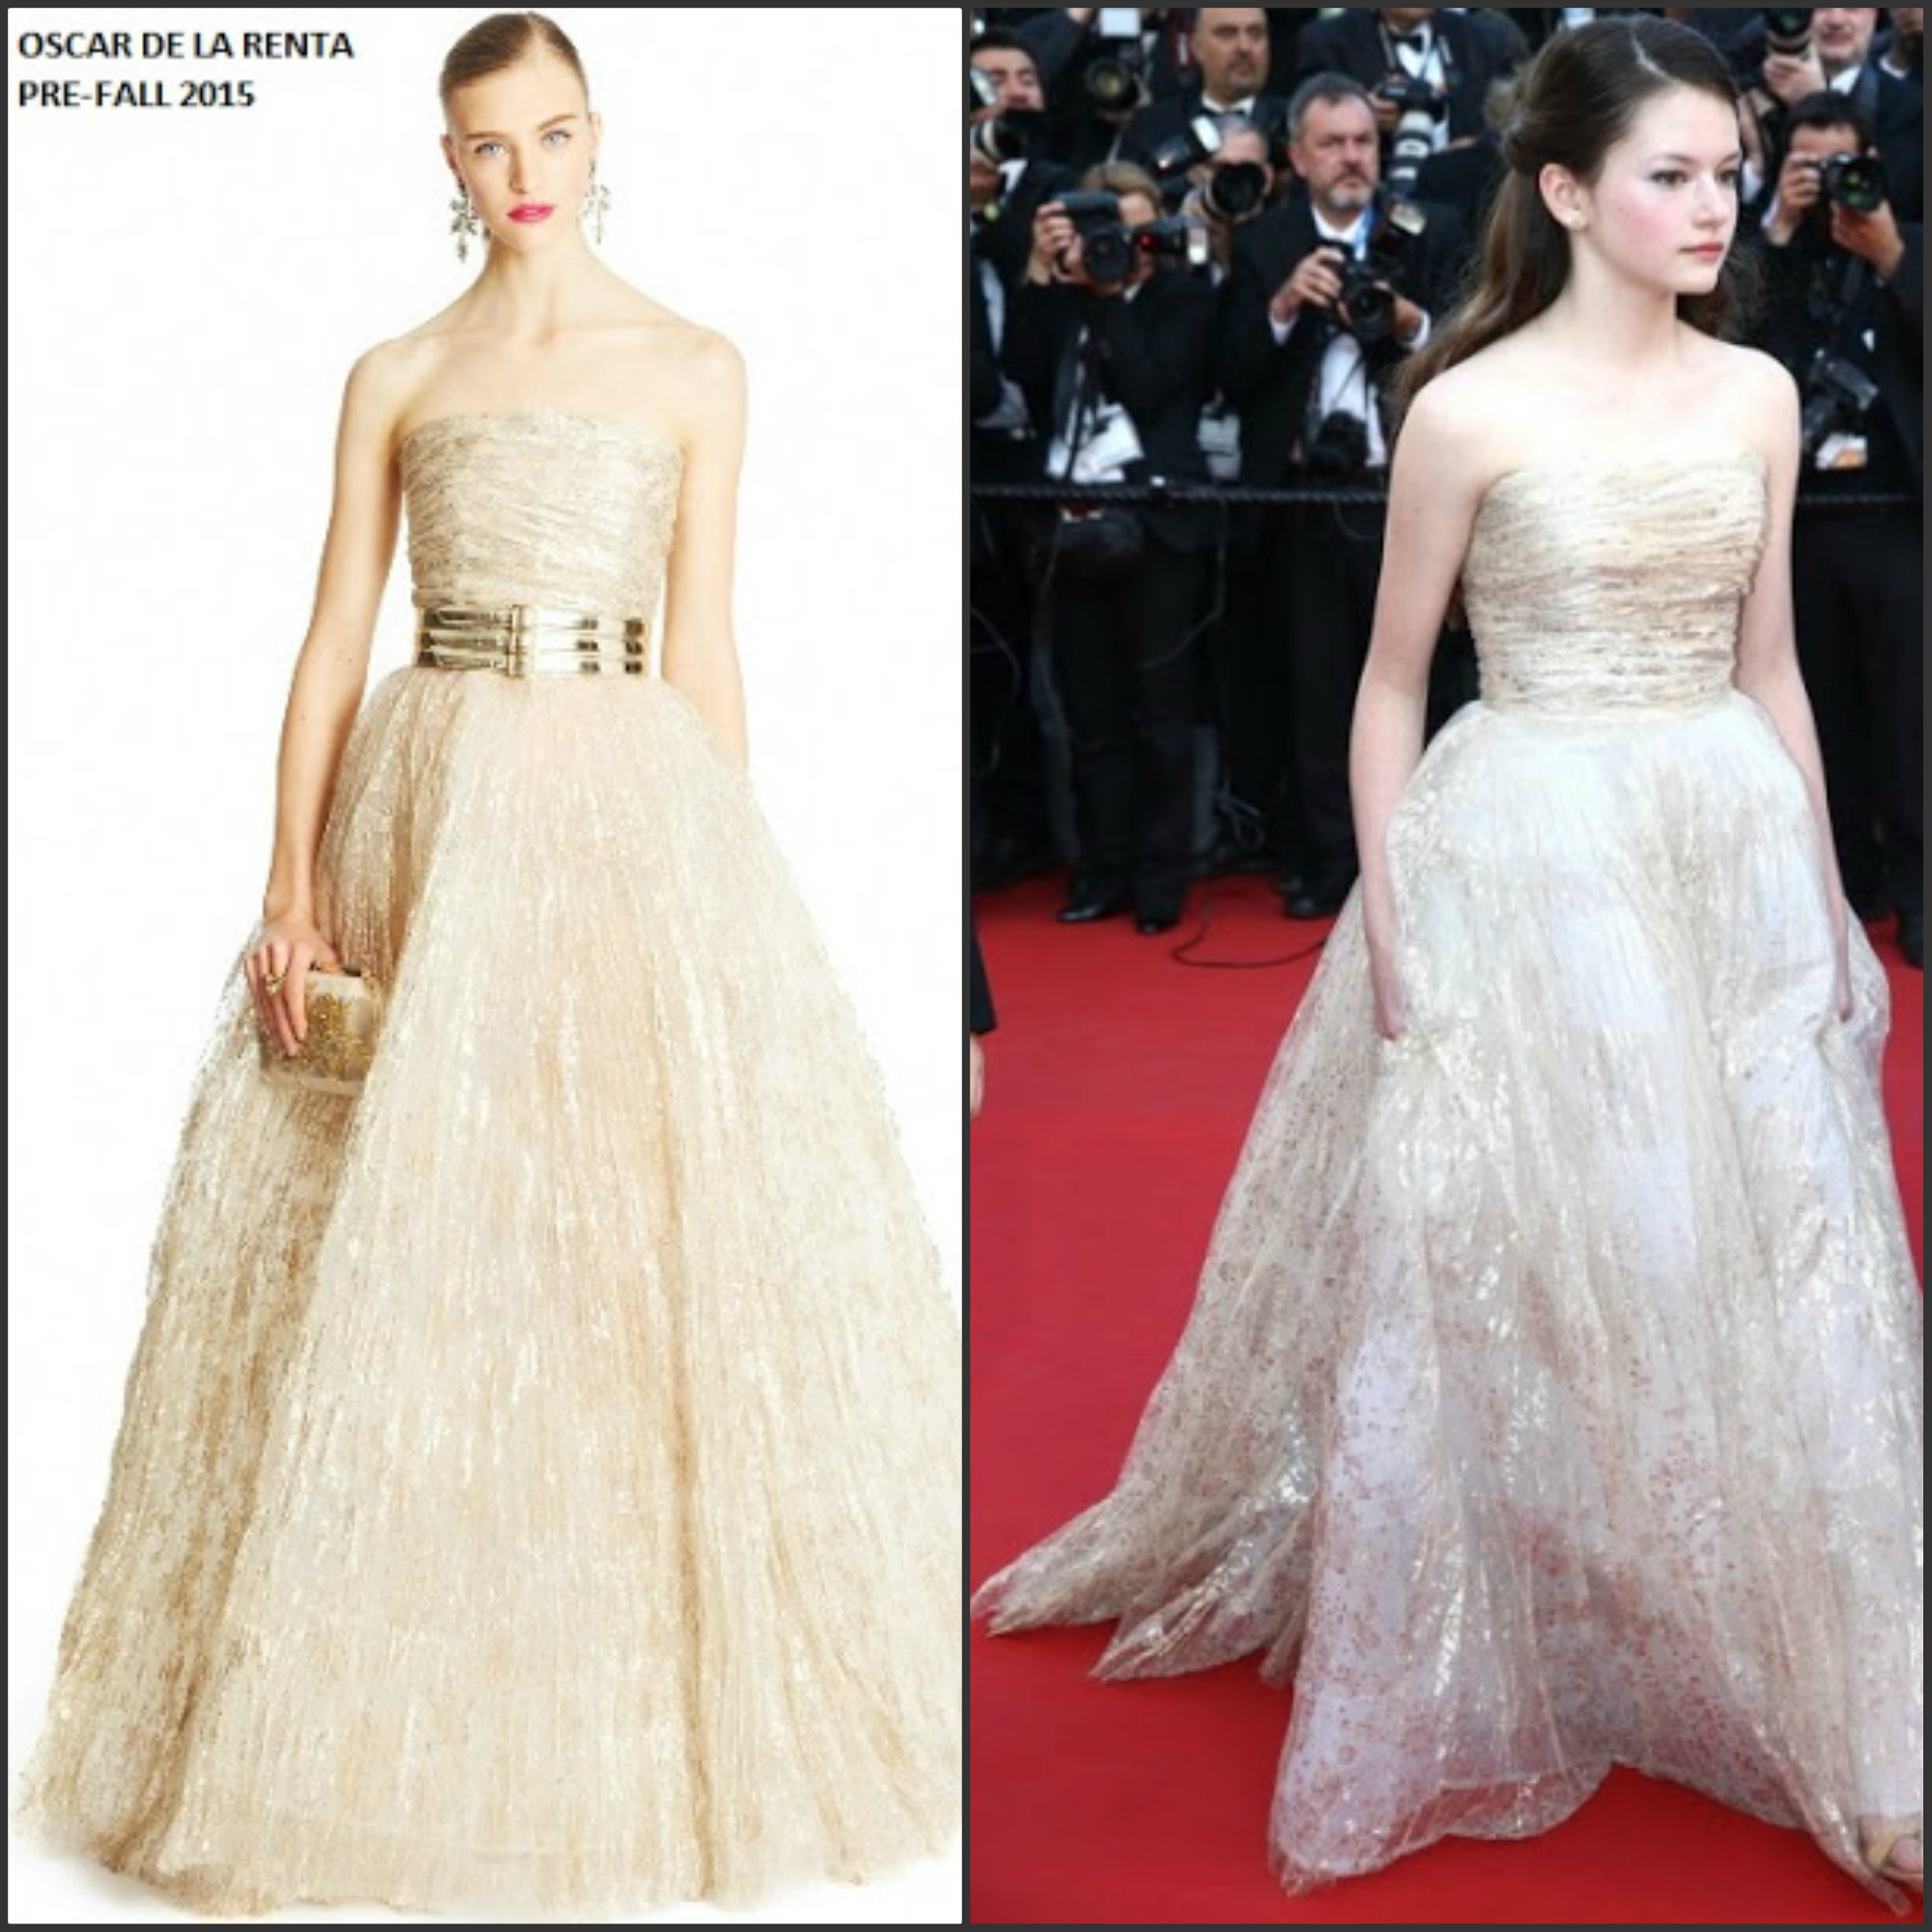 mackenzie-foy-in-oscar-de-la-renta-at-the-little-prince-68th-cannes-film-festival